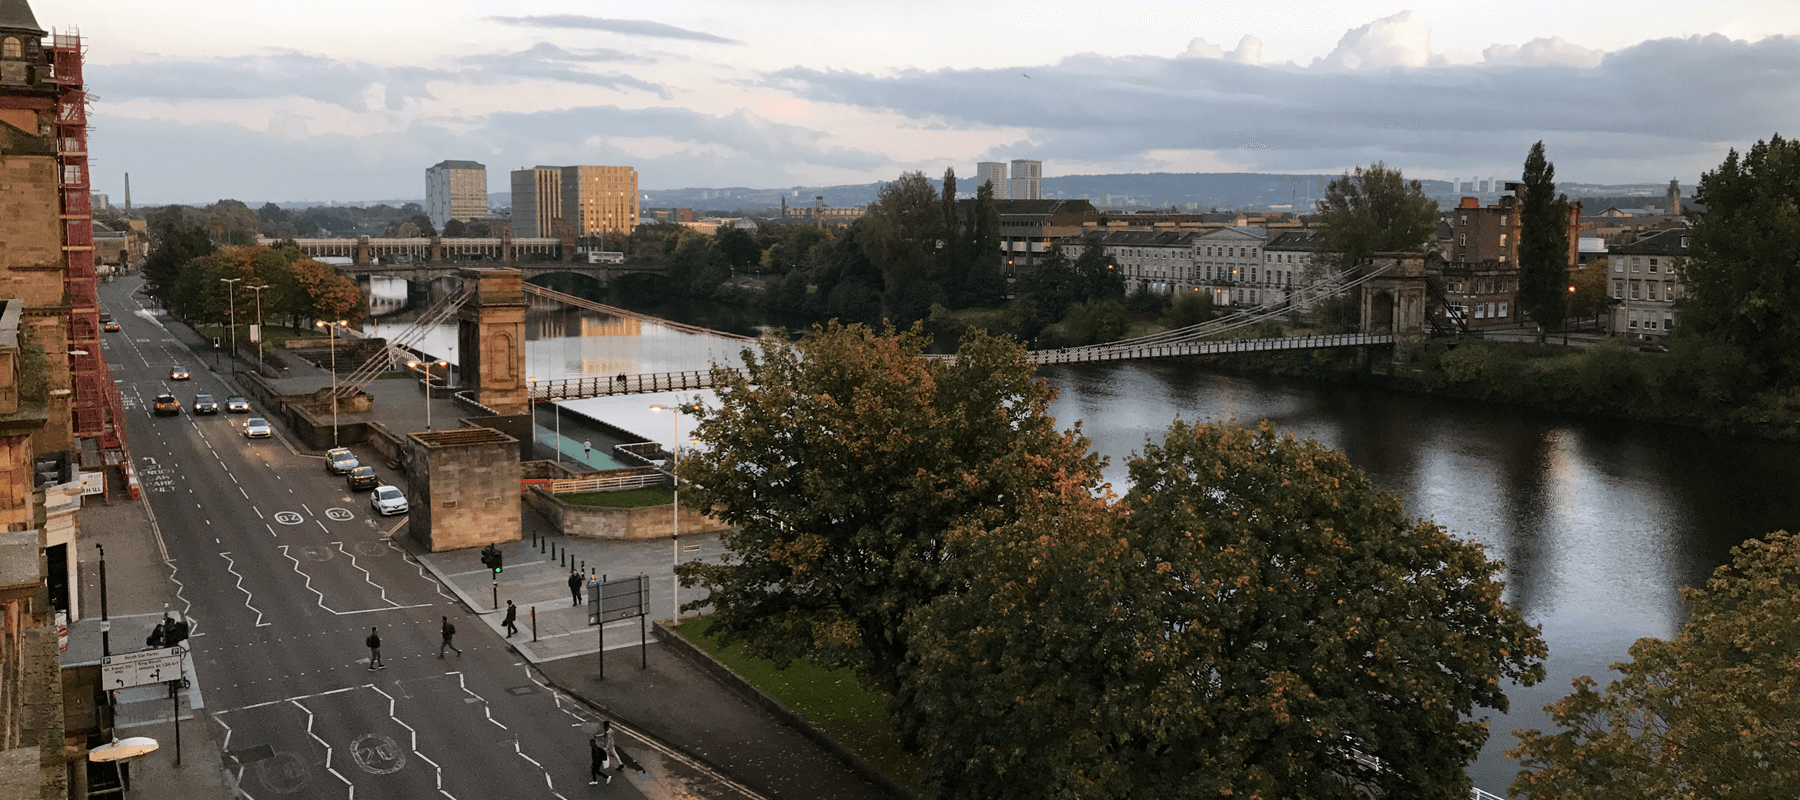 The View From The Balcony Overlooking The River Clyde